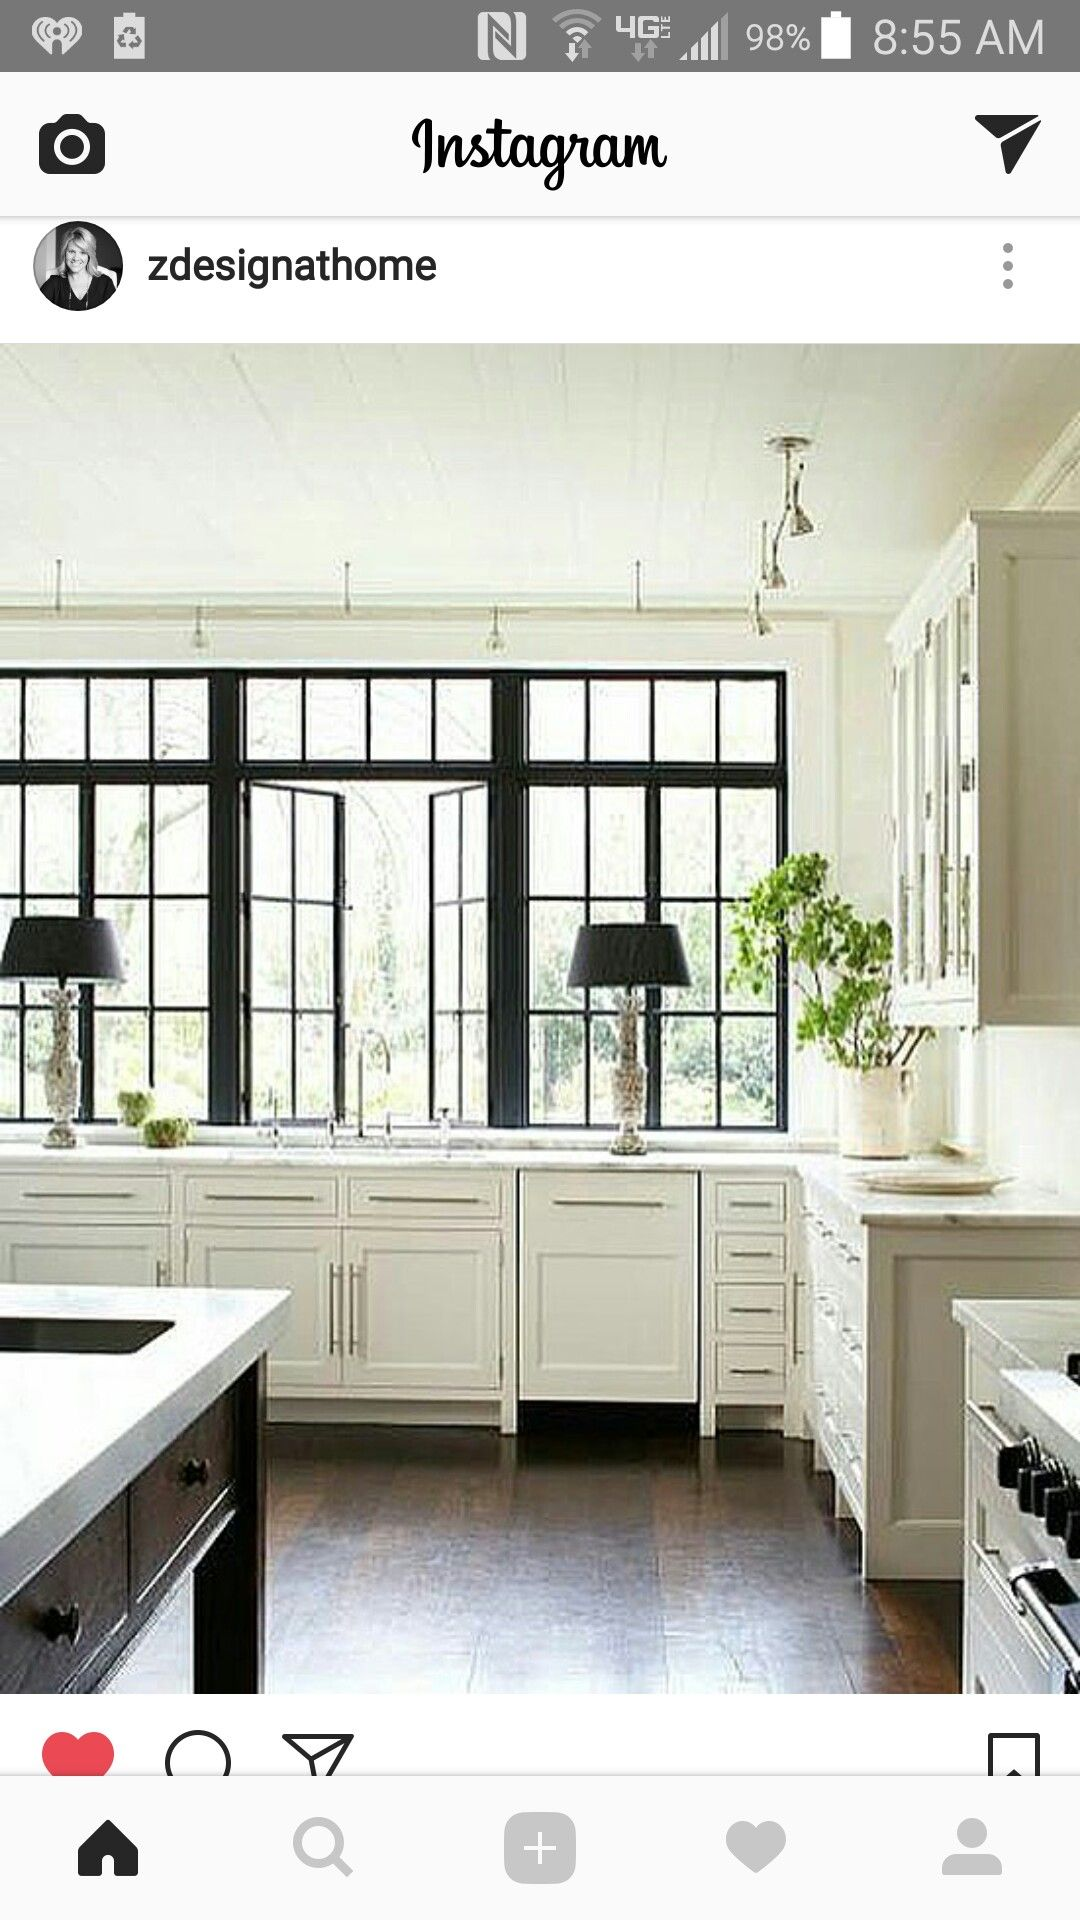 All the white with the dark window grids...   K I T C H E N S ...